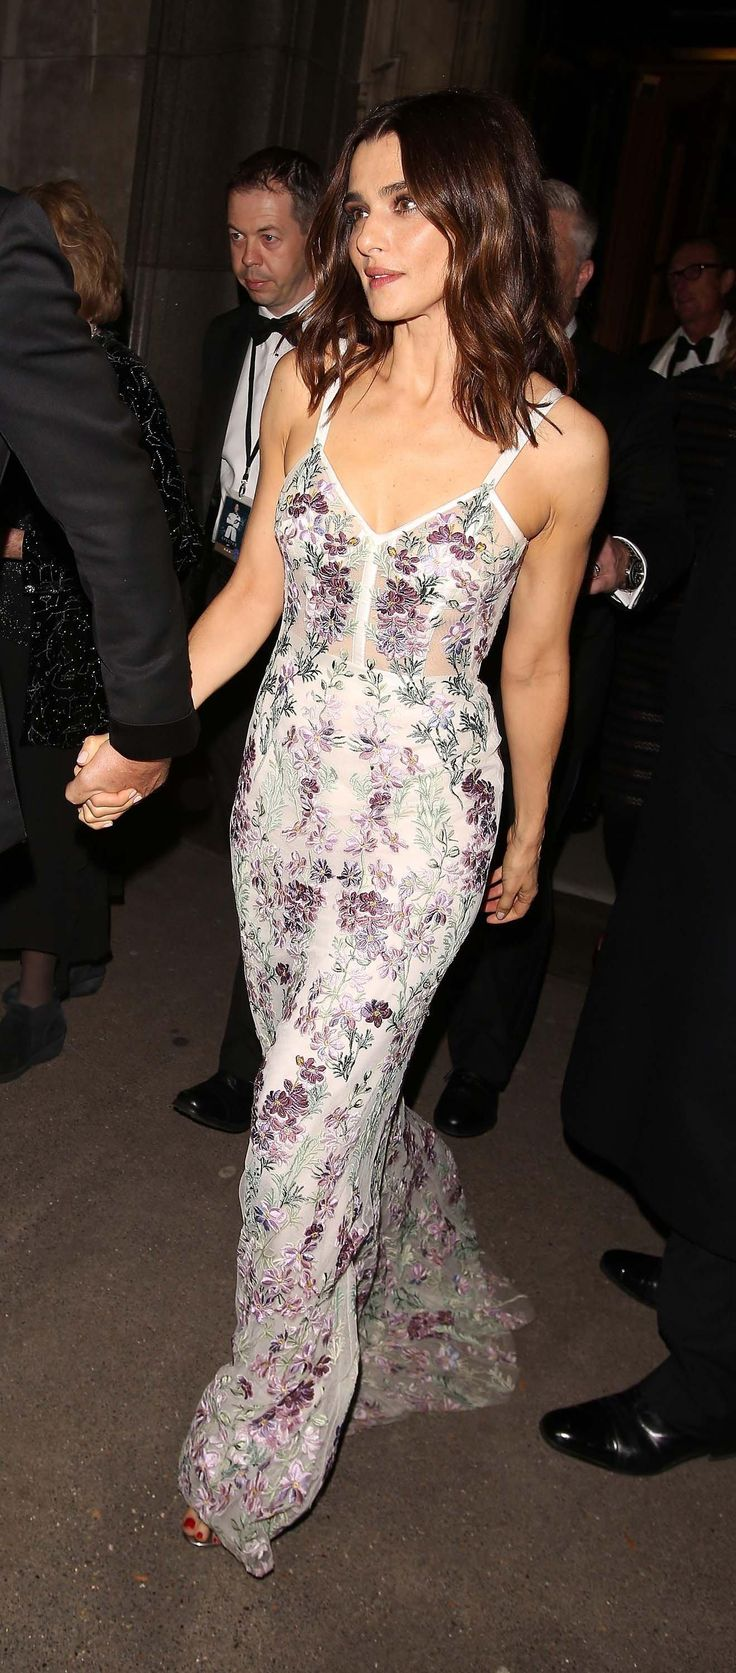 Rachel Weisz in a floral Alexander McQueen dress